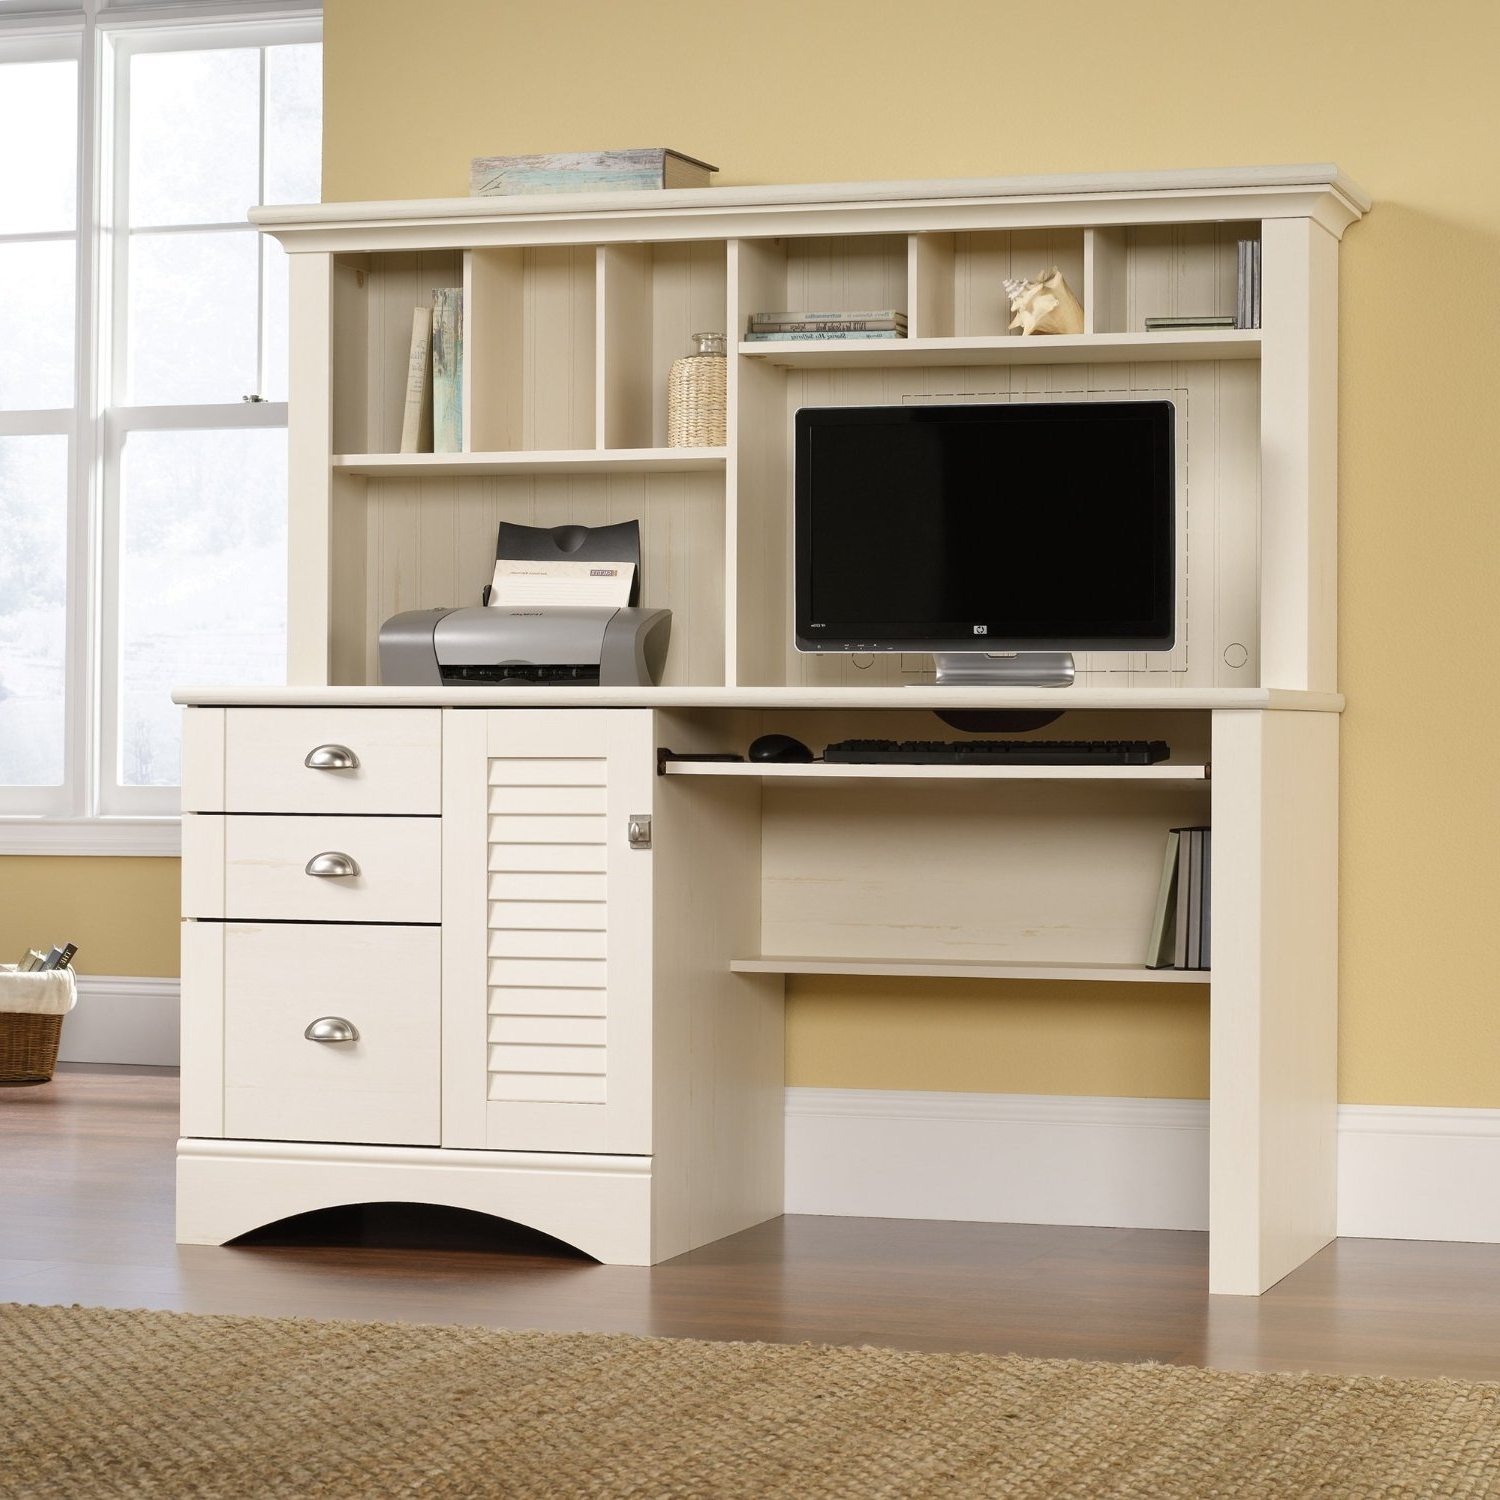 Computer Desk For Small Spaces — All Storage Bed (View 4 of 20)